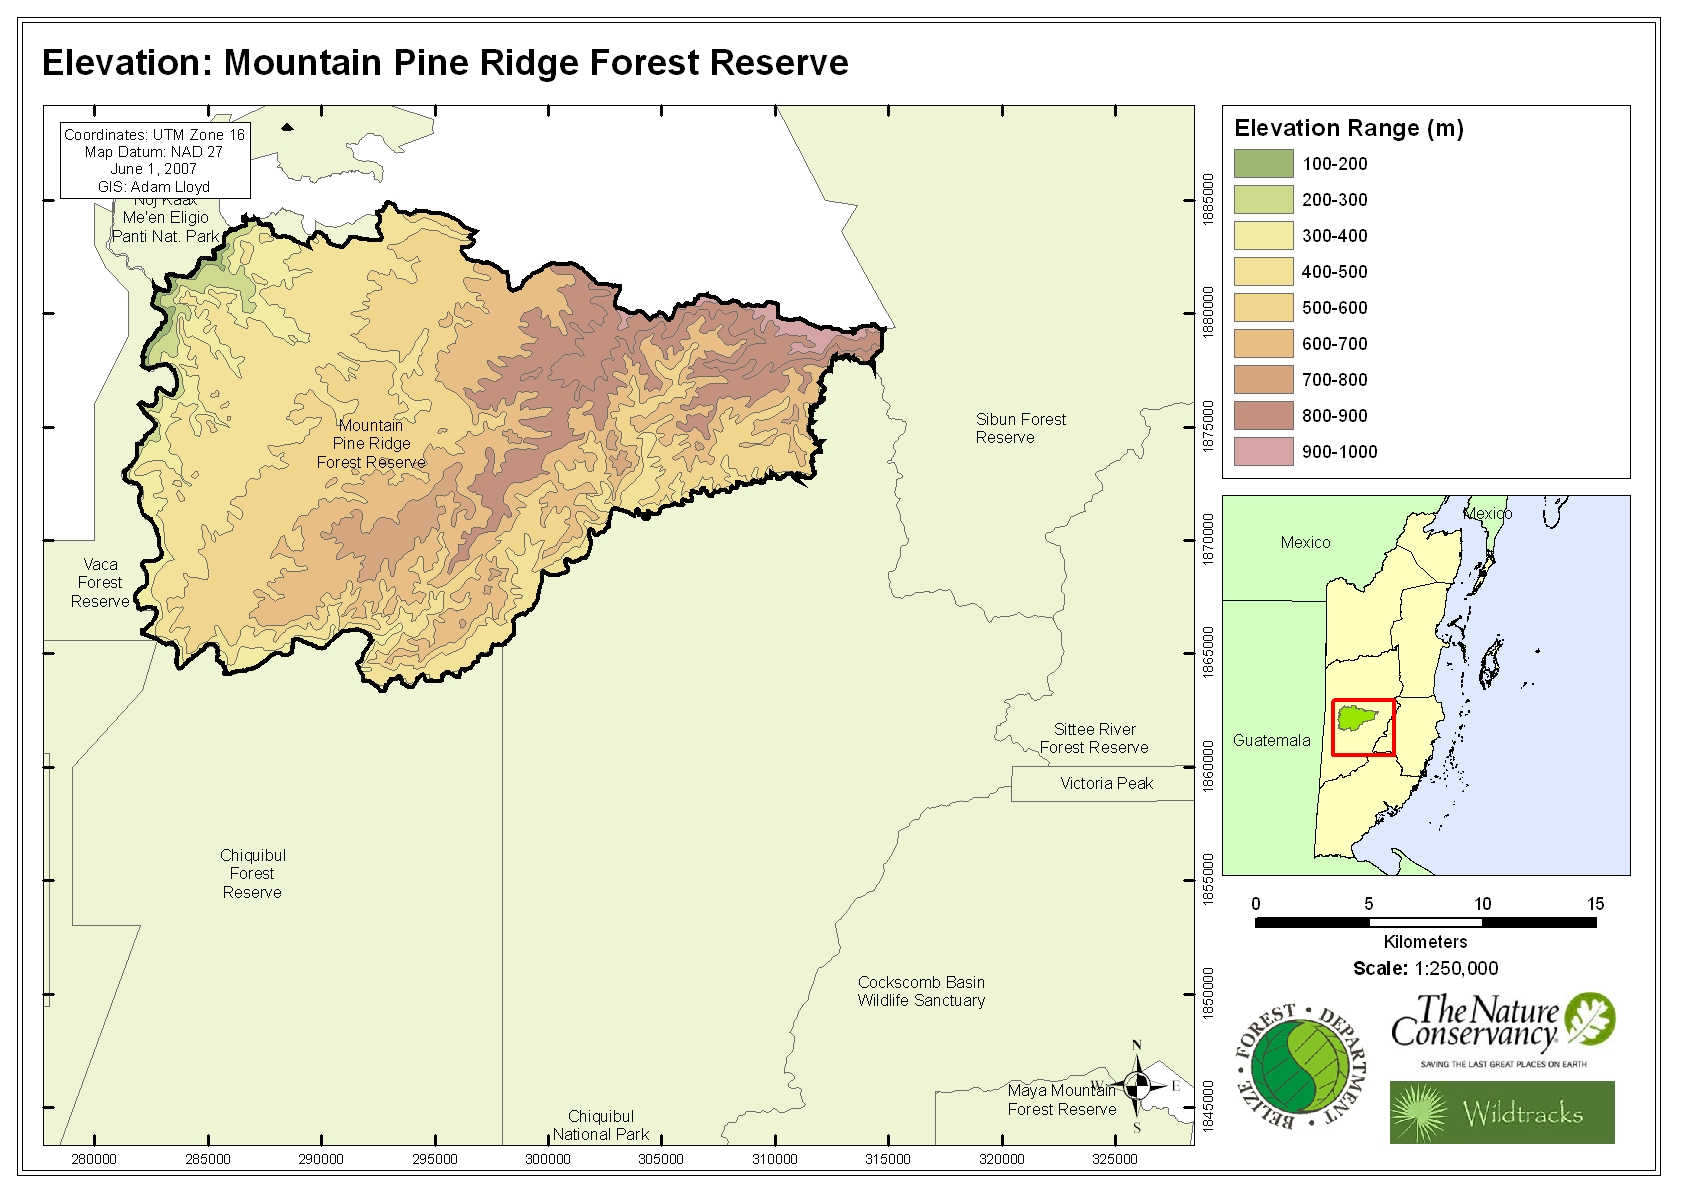 Elevation: Mountain Pine Ridge Forest Reserve